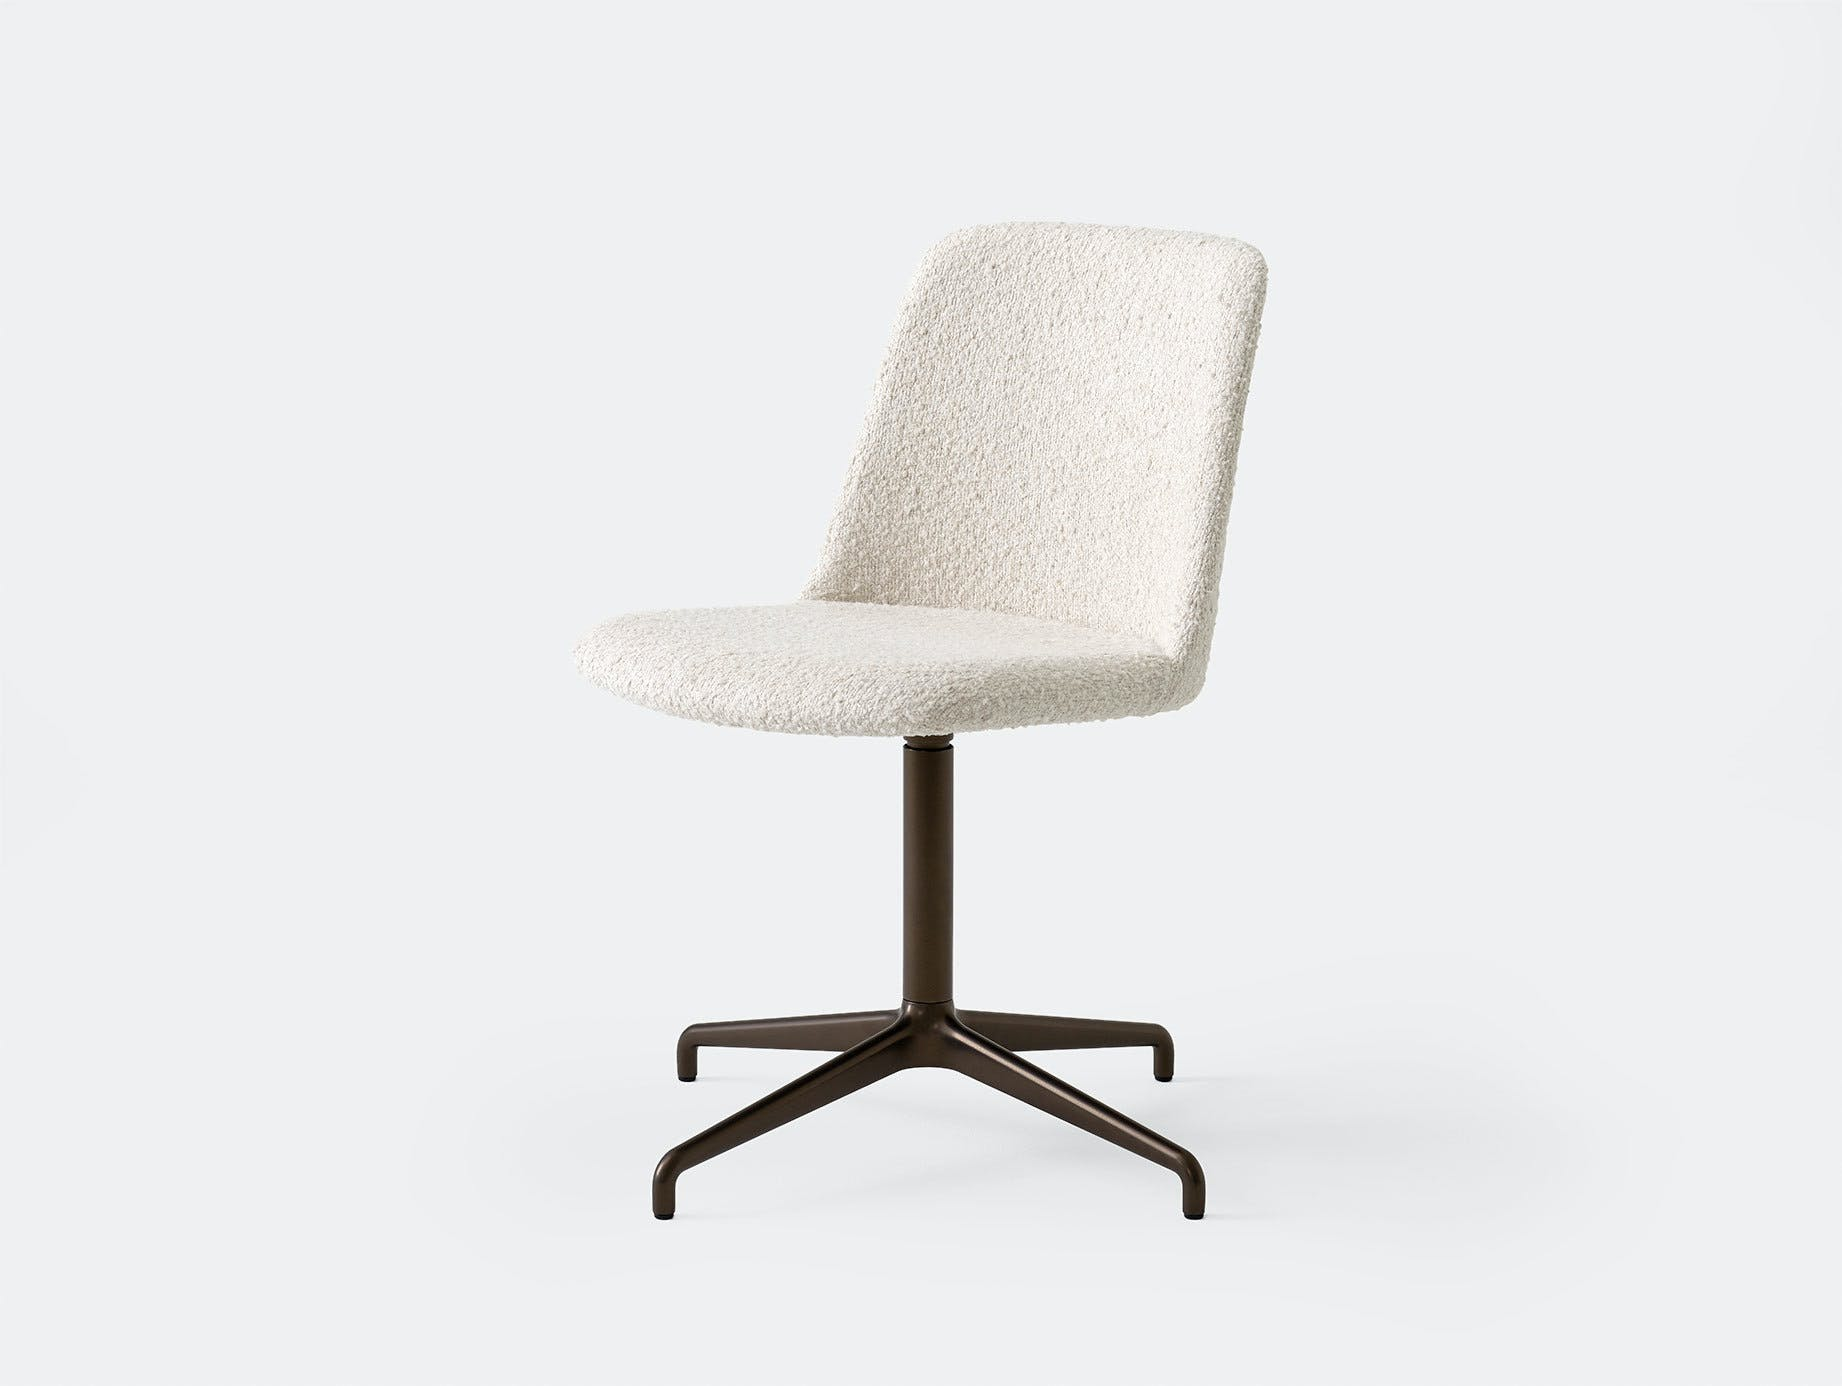 Andtradition rely chair HW13 serafino brz